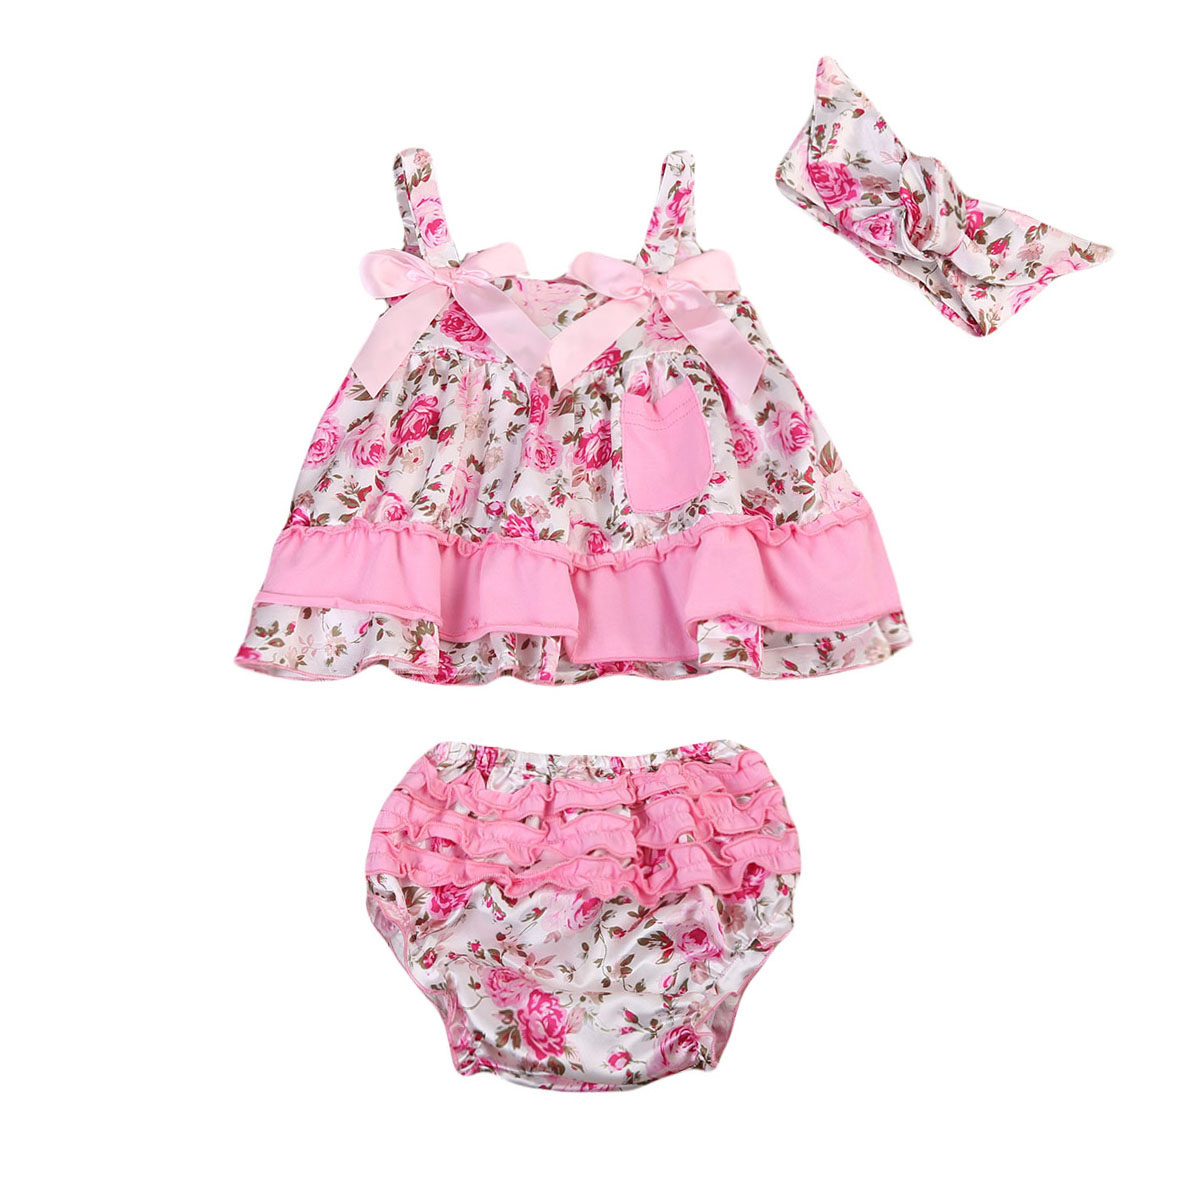 Mother & Kids Girls' Baby Clothing 2017 Summer Baby Romper Photography Props Baby Girl Ruffled Backless Top Shorts Outfit Infant Toddler Boutique Clothing Set Street Price